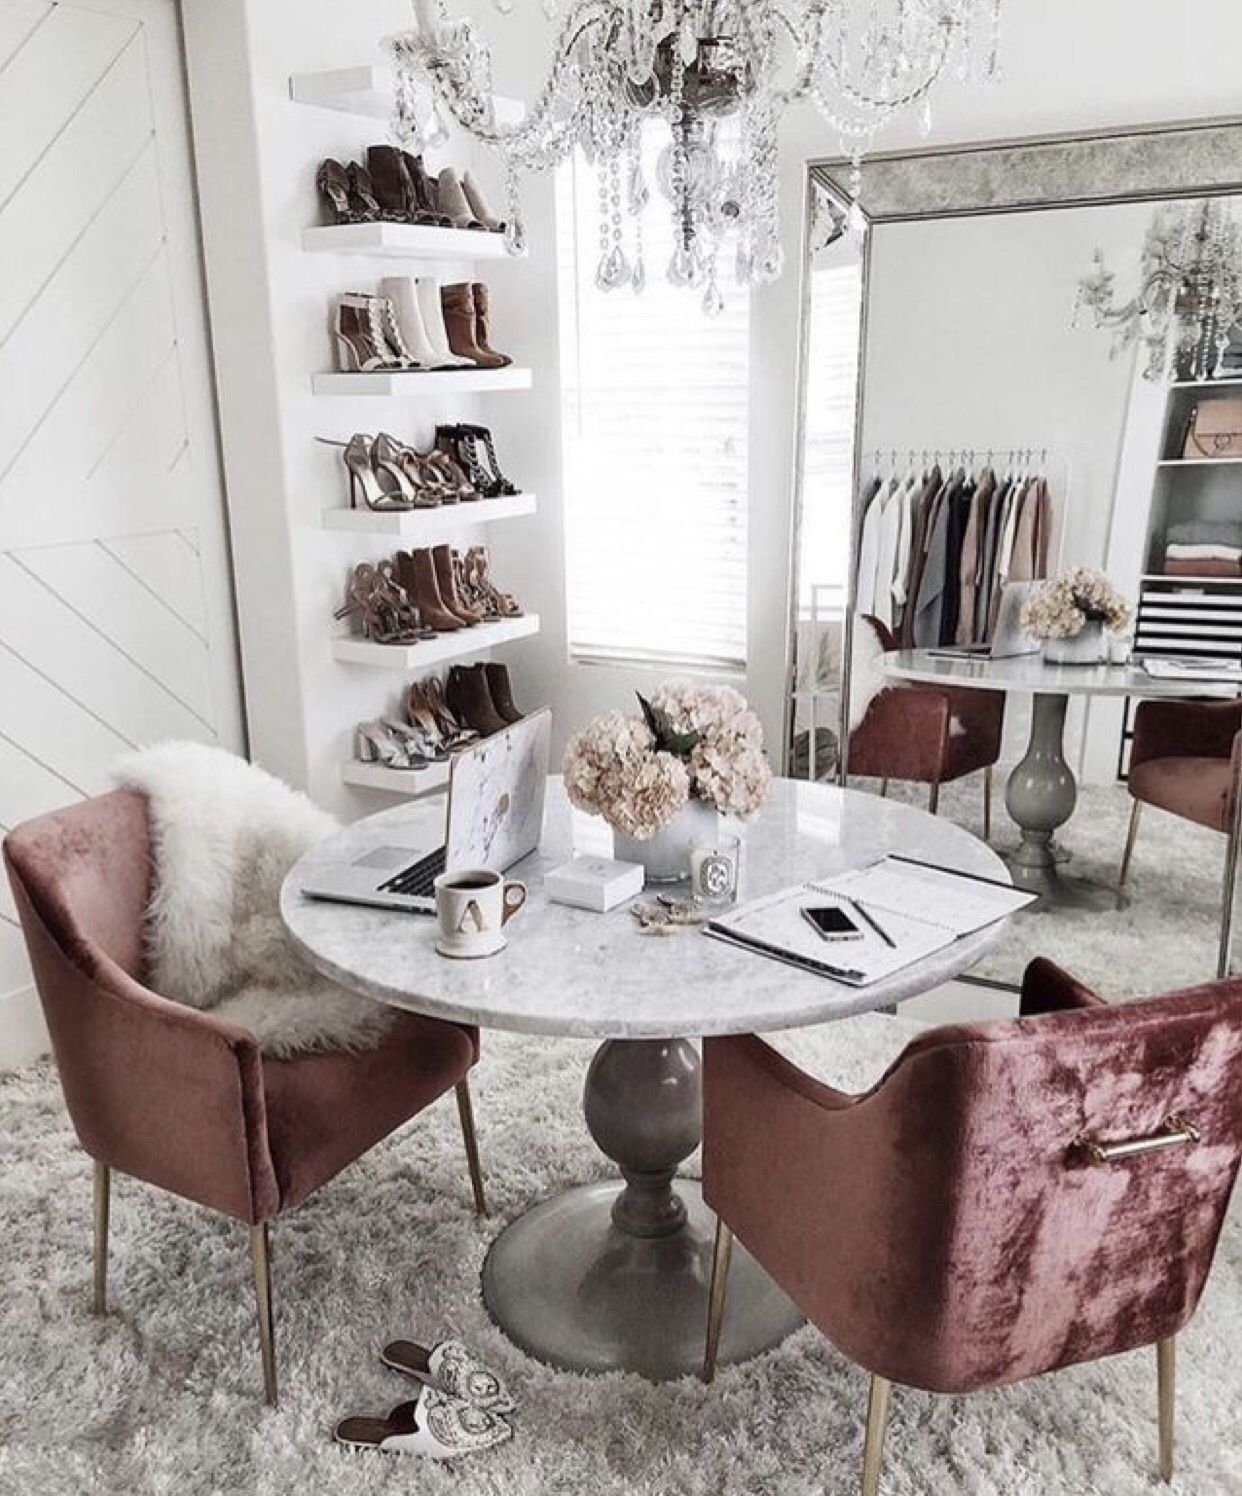 Interior Vibes Emptywhole Decorating Your Room Check Out